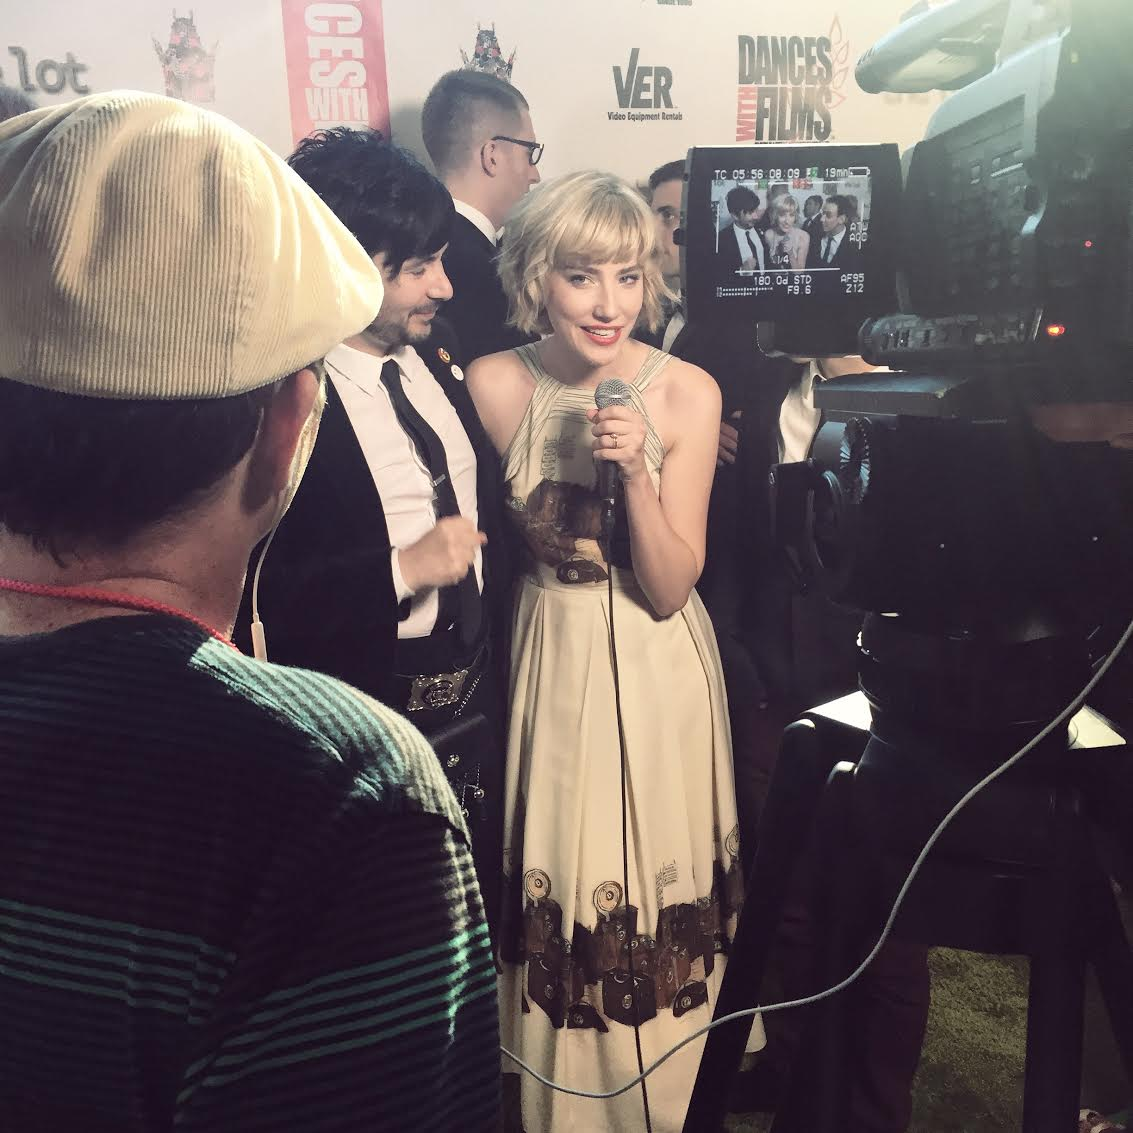 Jenni Melear and Stuart MacLeod at Funny Love's Dances with Films Premiere